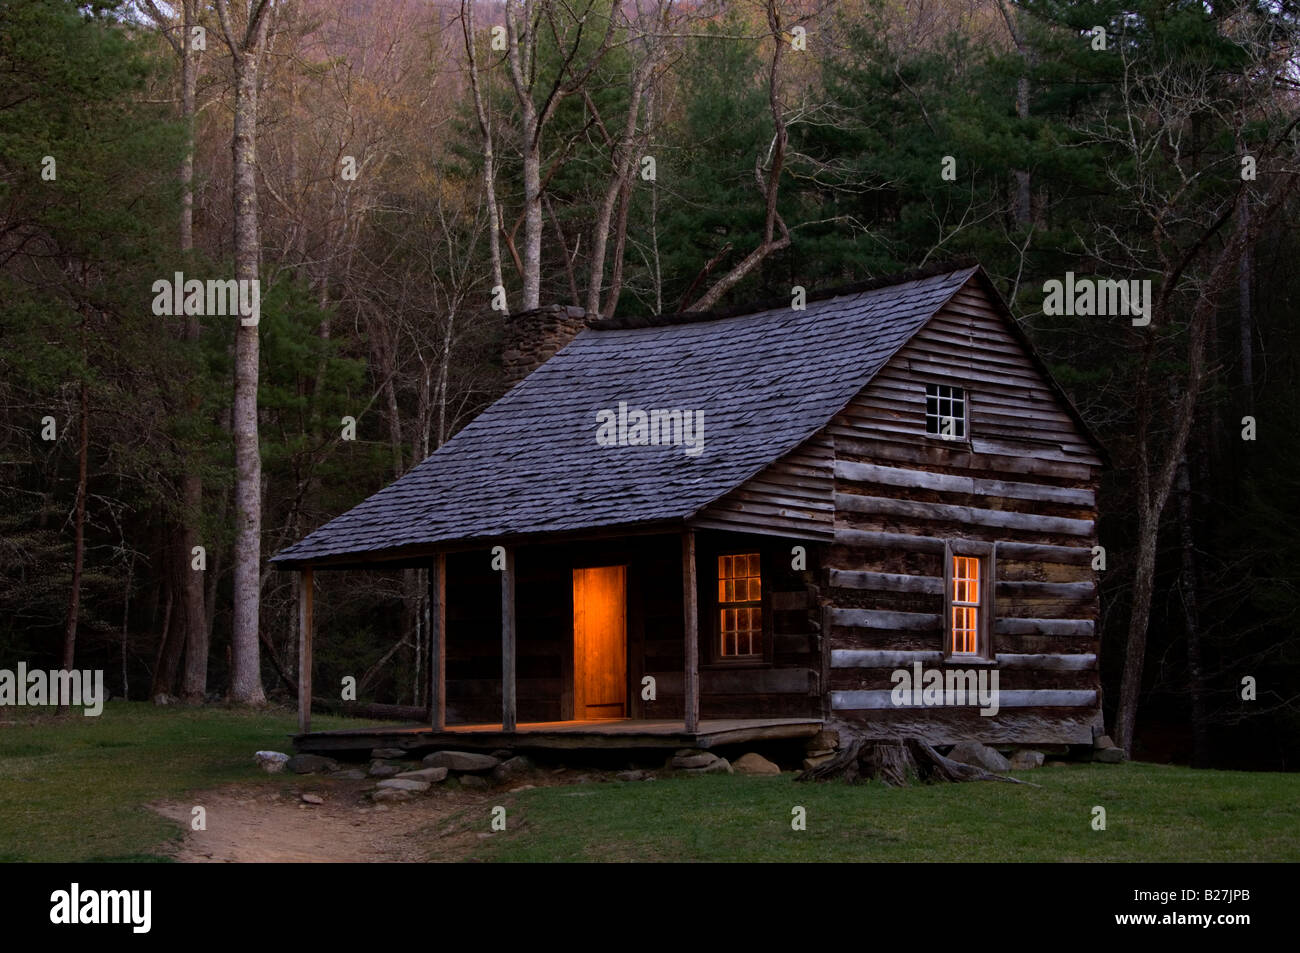 Carter Shield's cabin at night in Cades Cove, Great Smoky Mountains National Park, Tennessee, USA - Stock Image